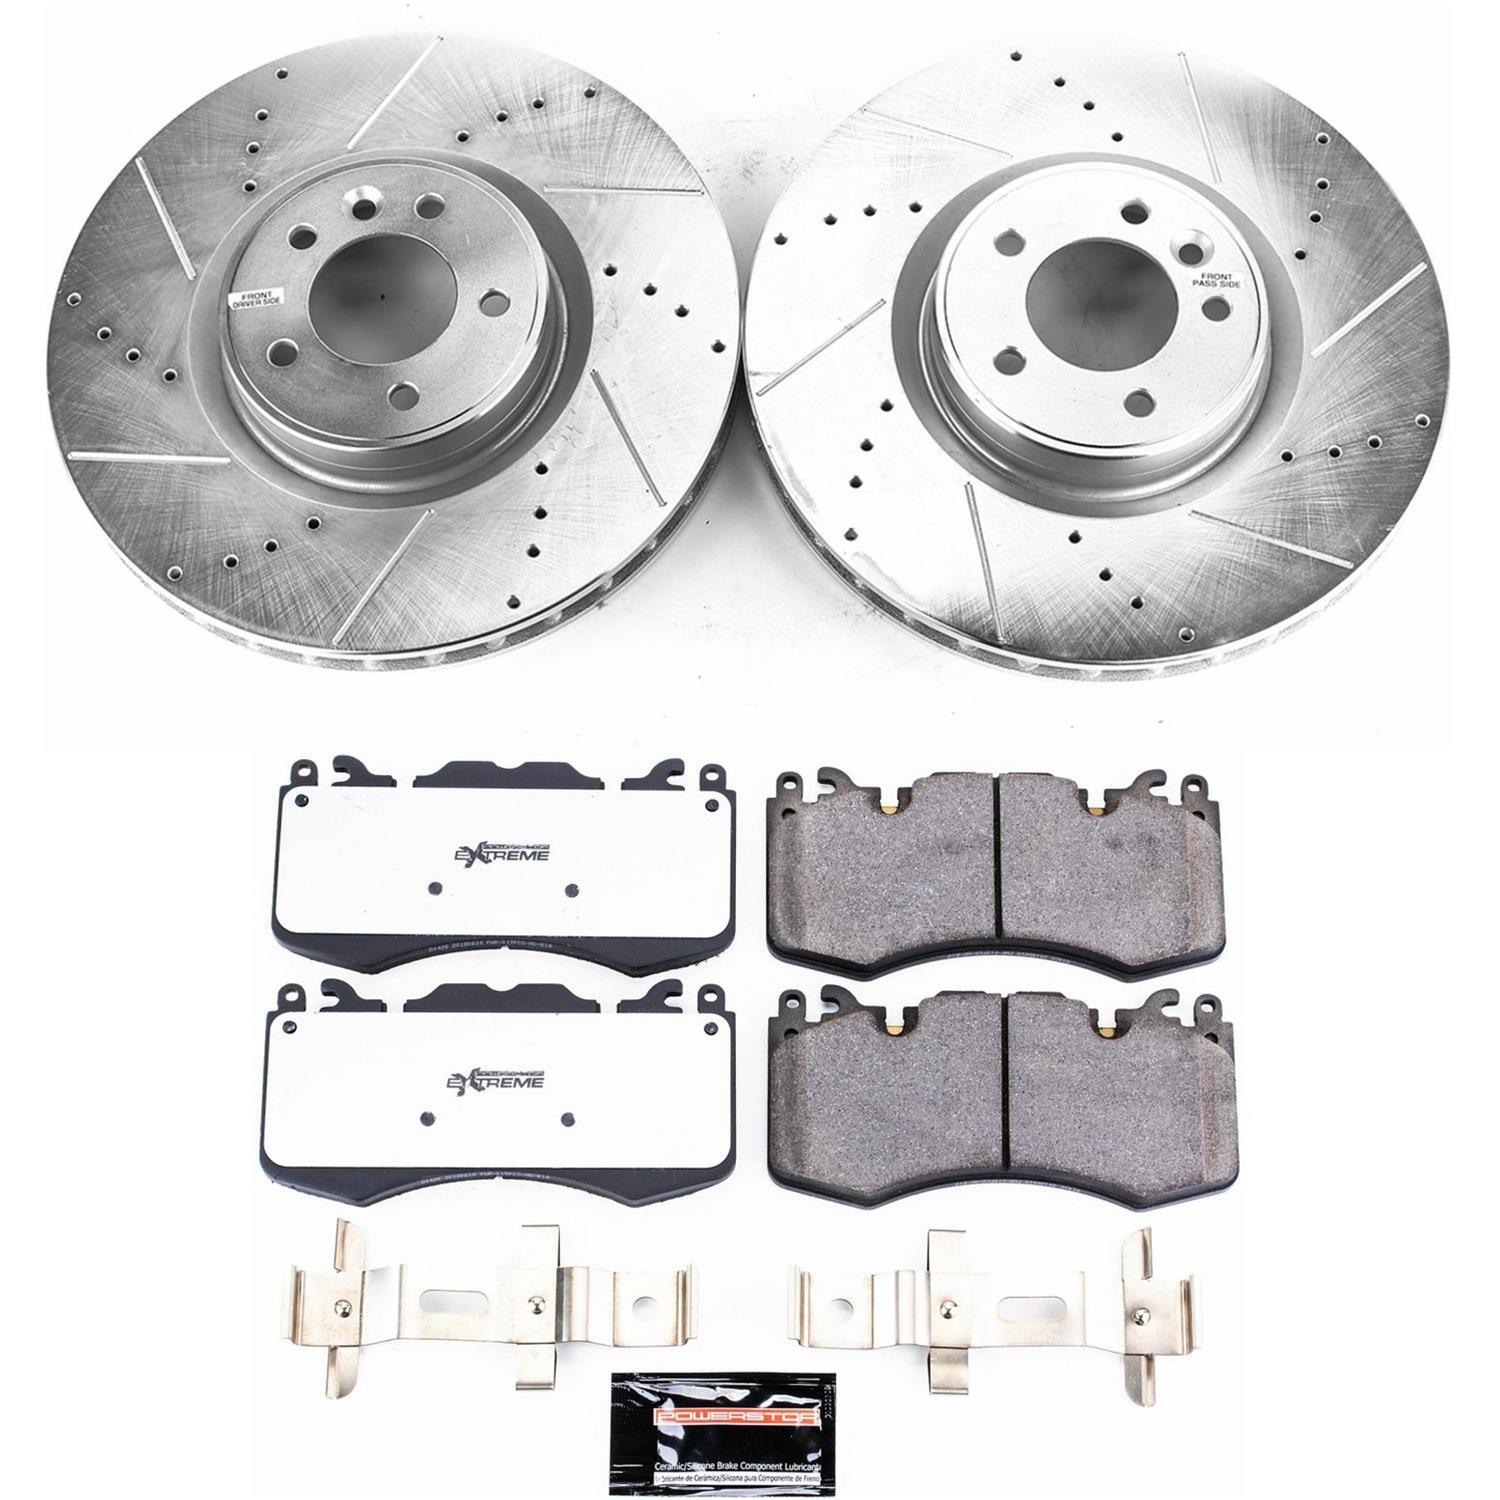 No Hardware Included For Brake Pads Front Disc Brake Rotors and Ceramic Brake Pads for 2001 Dodge Ram 3500 With Two Years Manufacturer Warranty